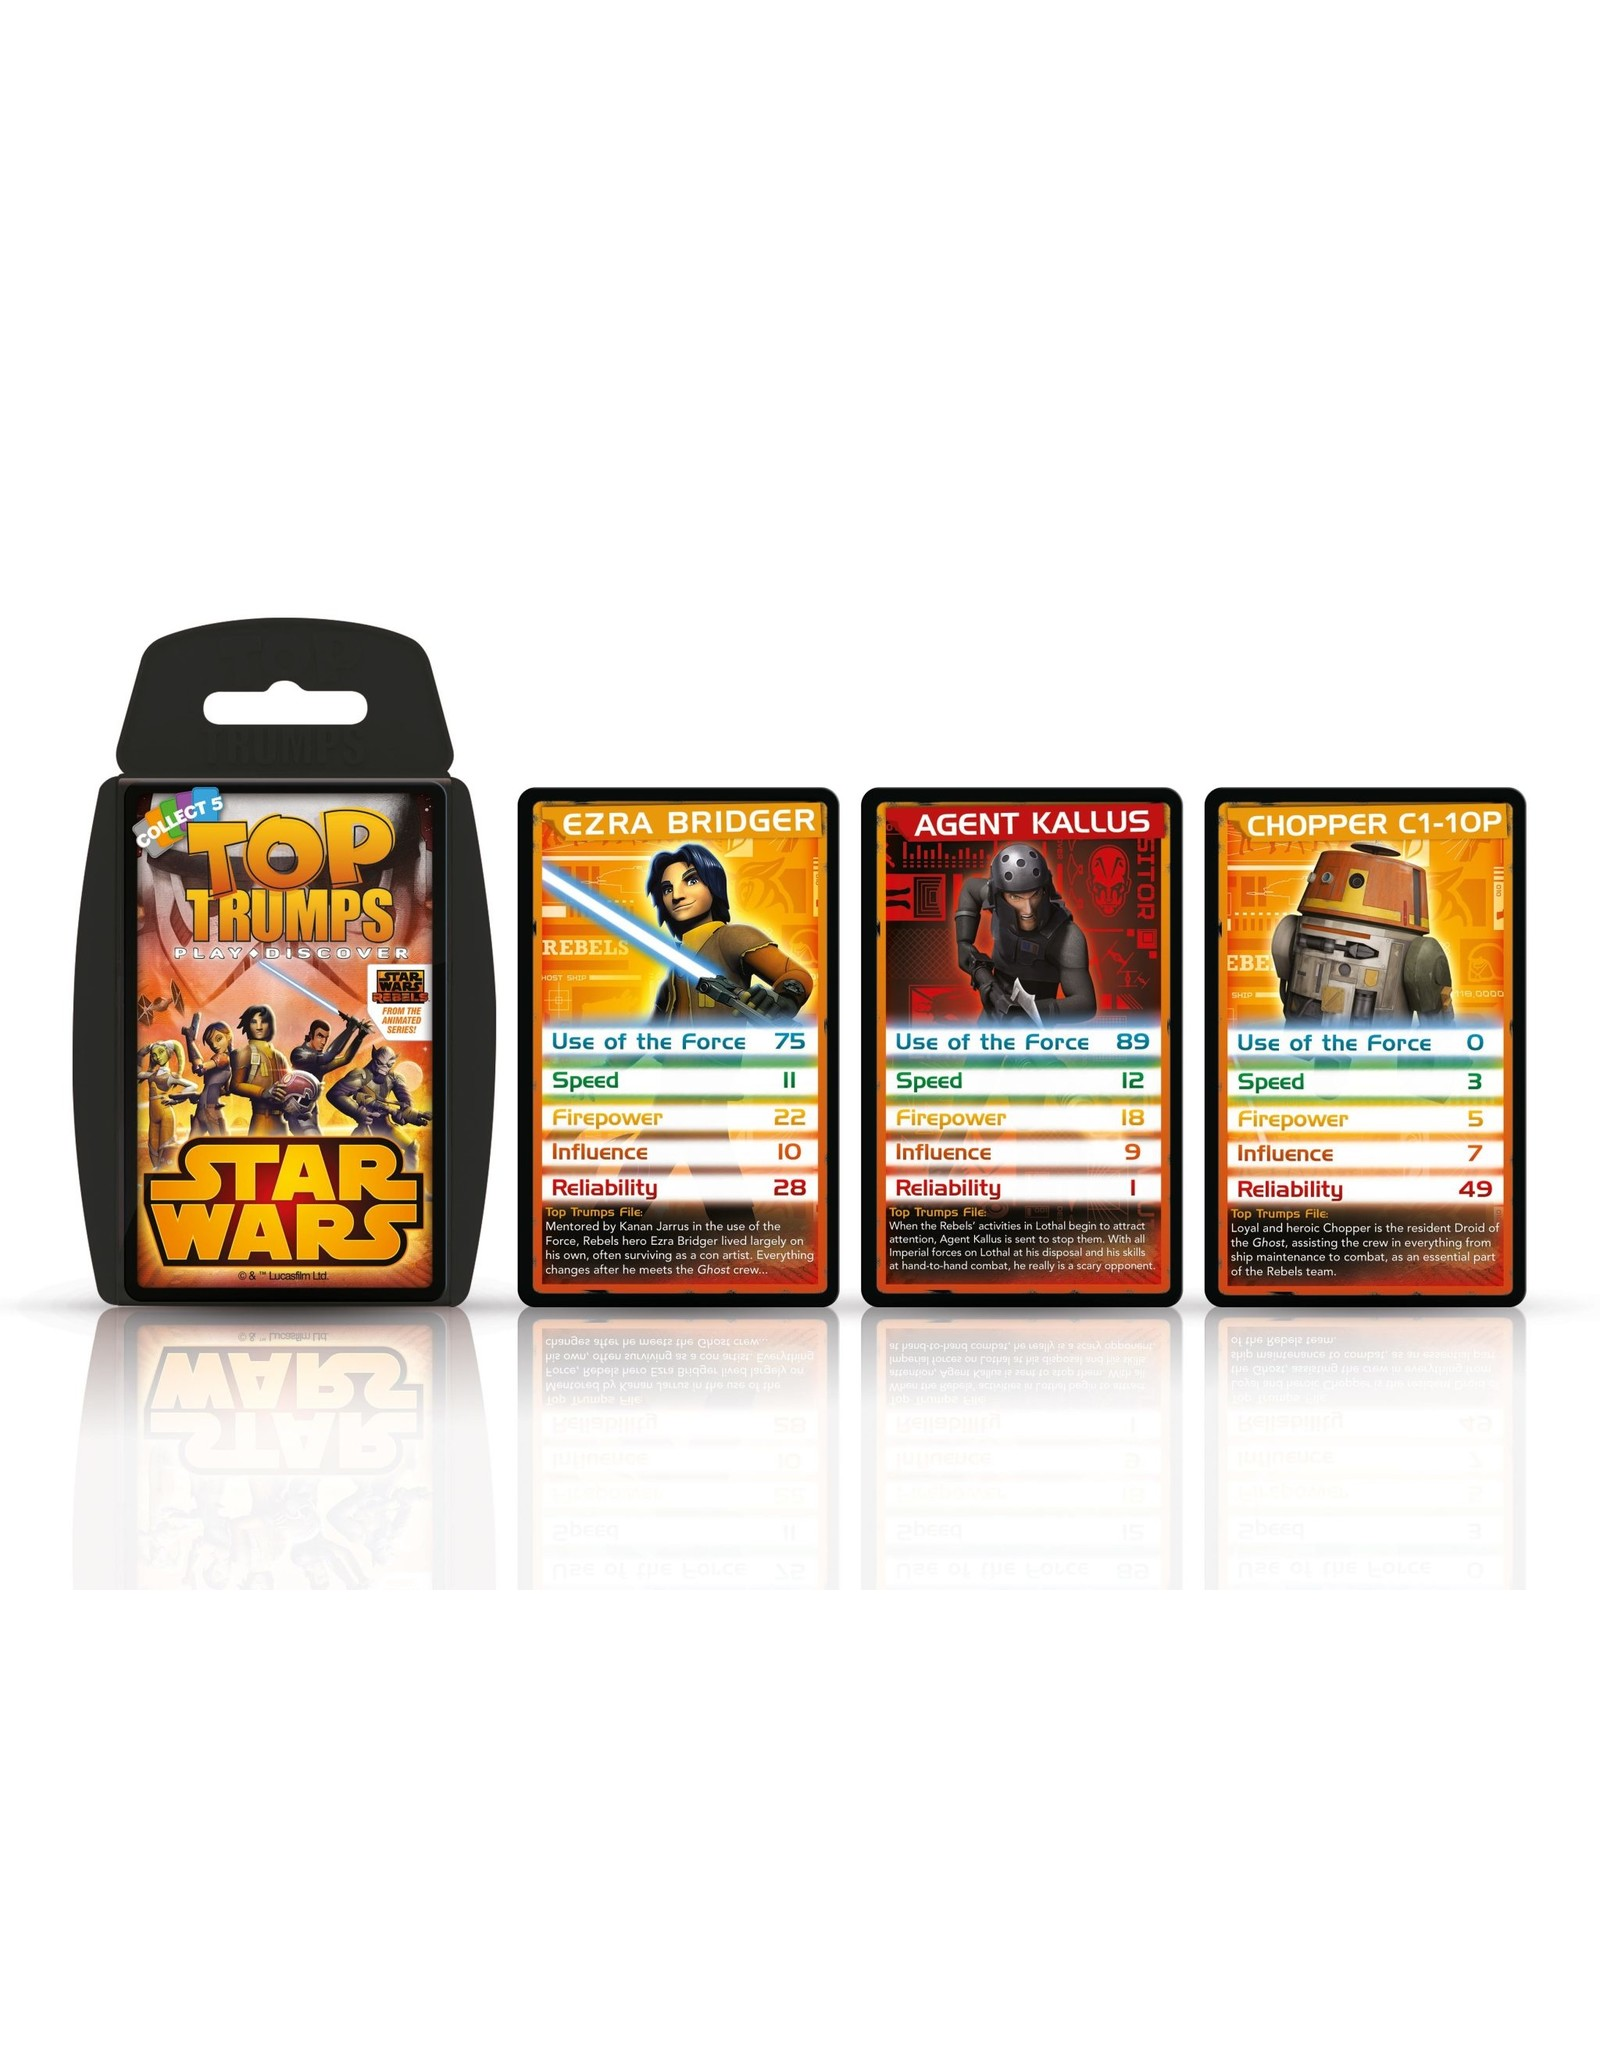 Top Trumps Star Wars Rebels